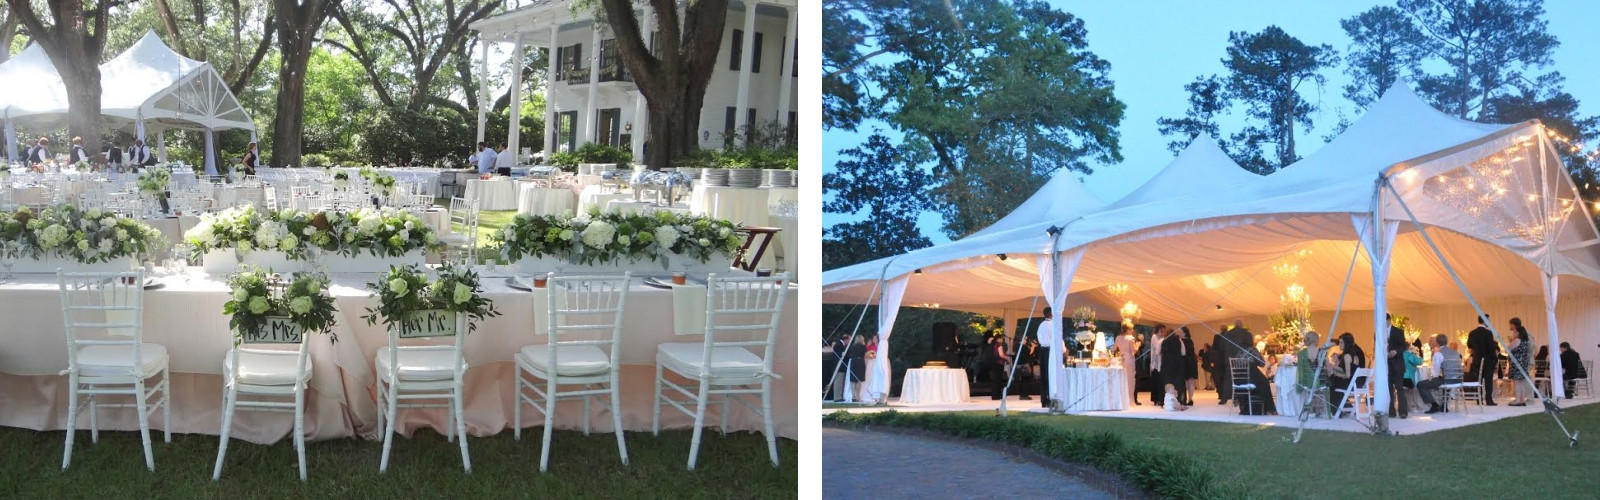 Event rentals in Mobile Alabama, Prichard, Daphne, Saraland, Tillmans Corner, and the Greater Gulf Coast